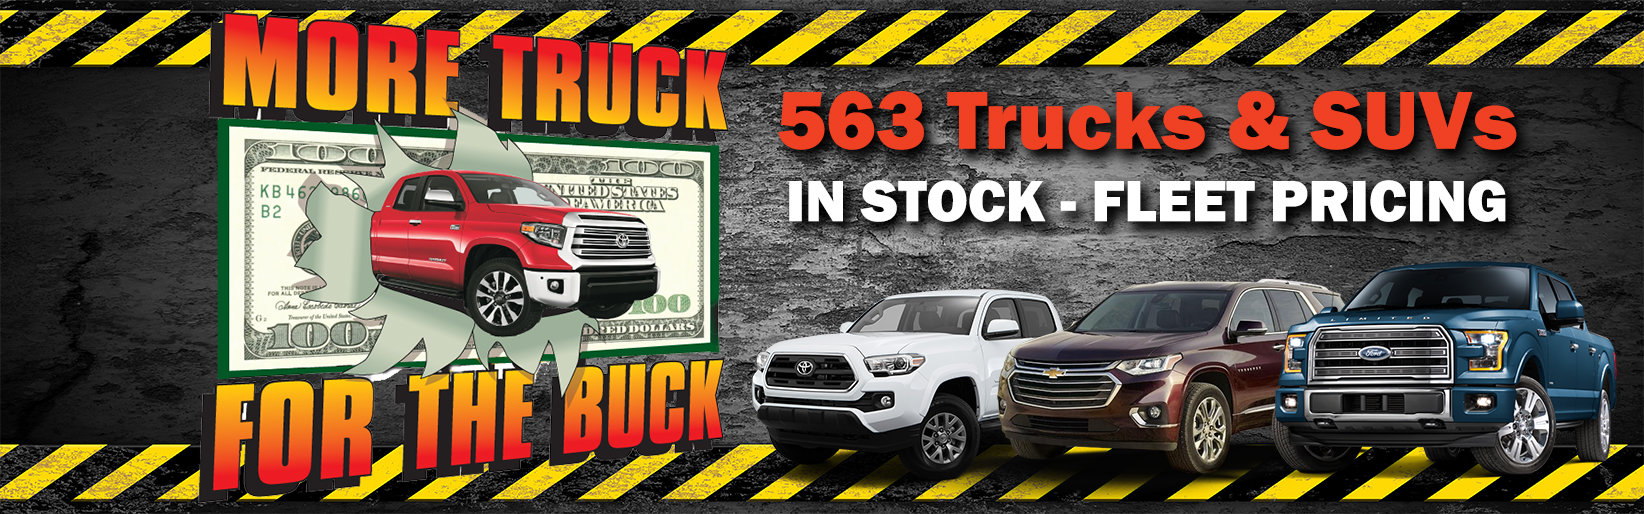 More Truck for Buck